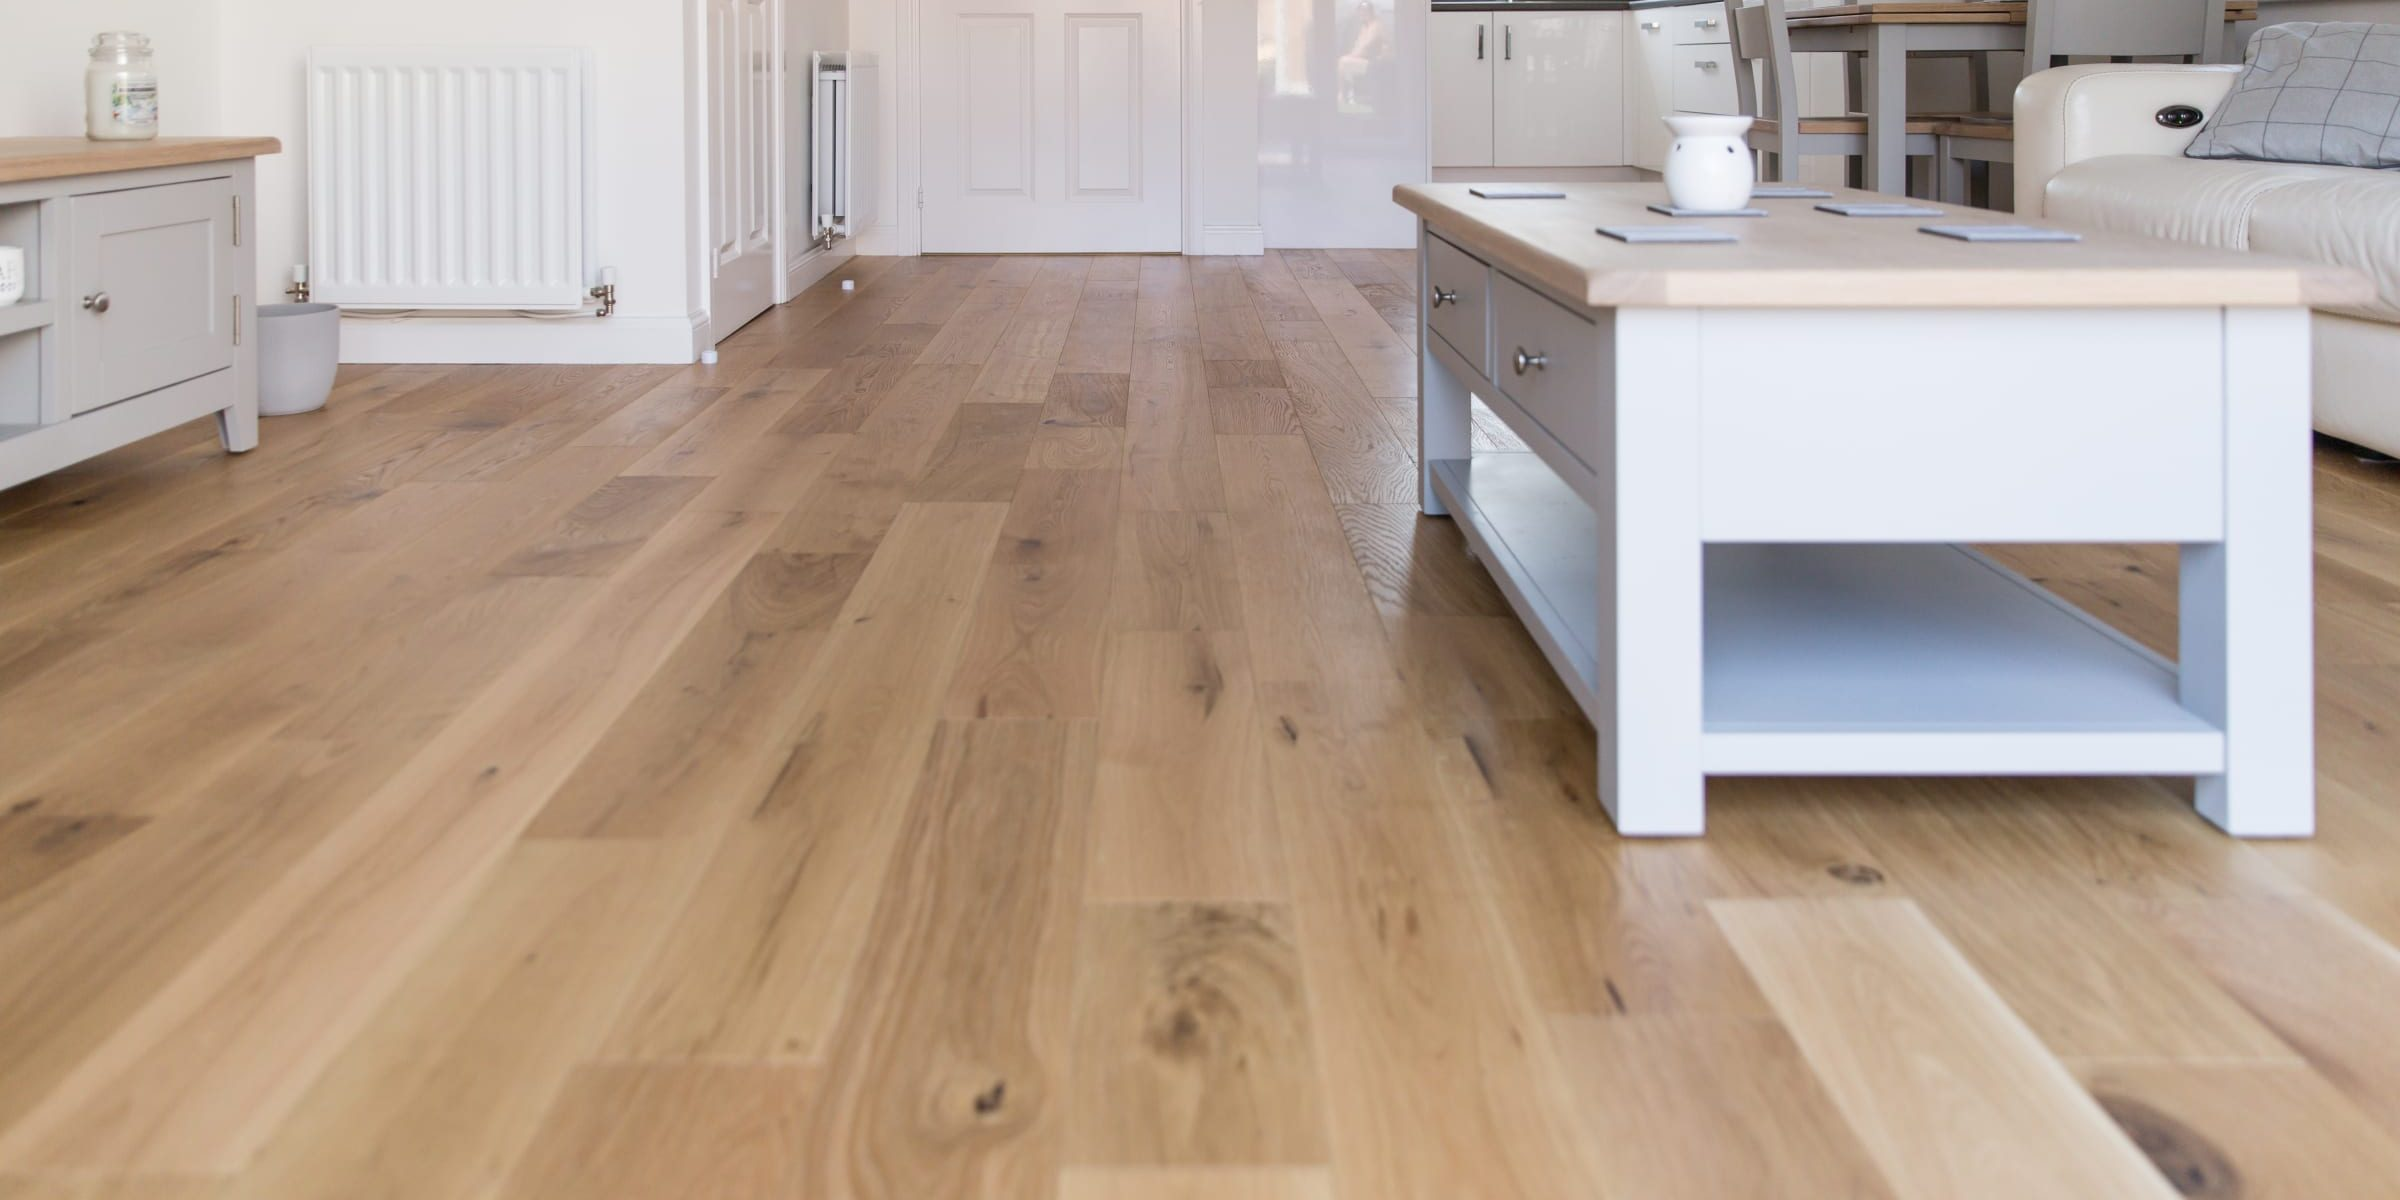 Swindon home with Eiger Petit wood floors 10